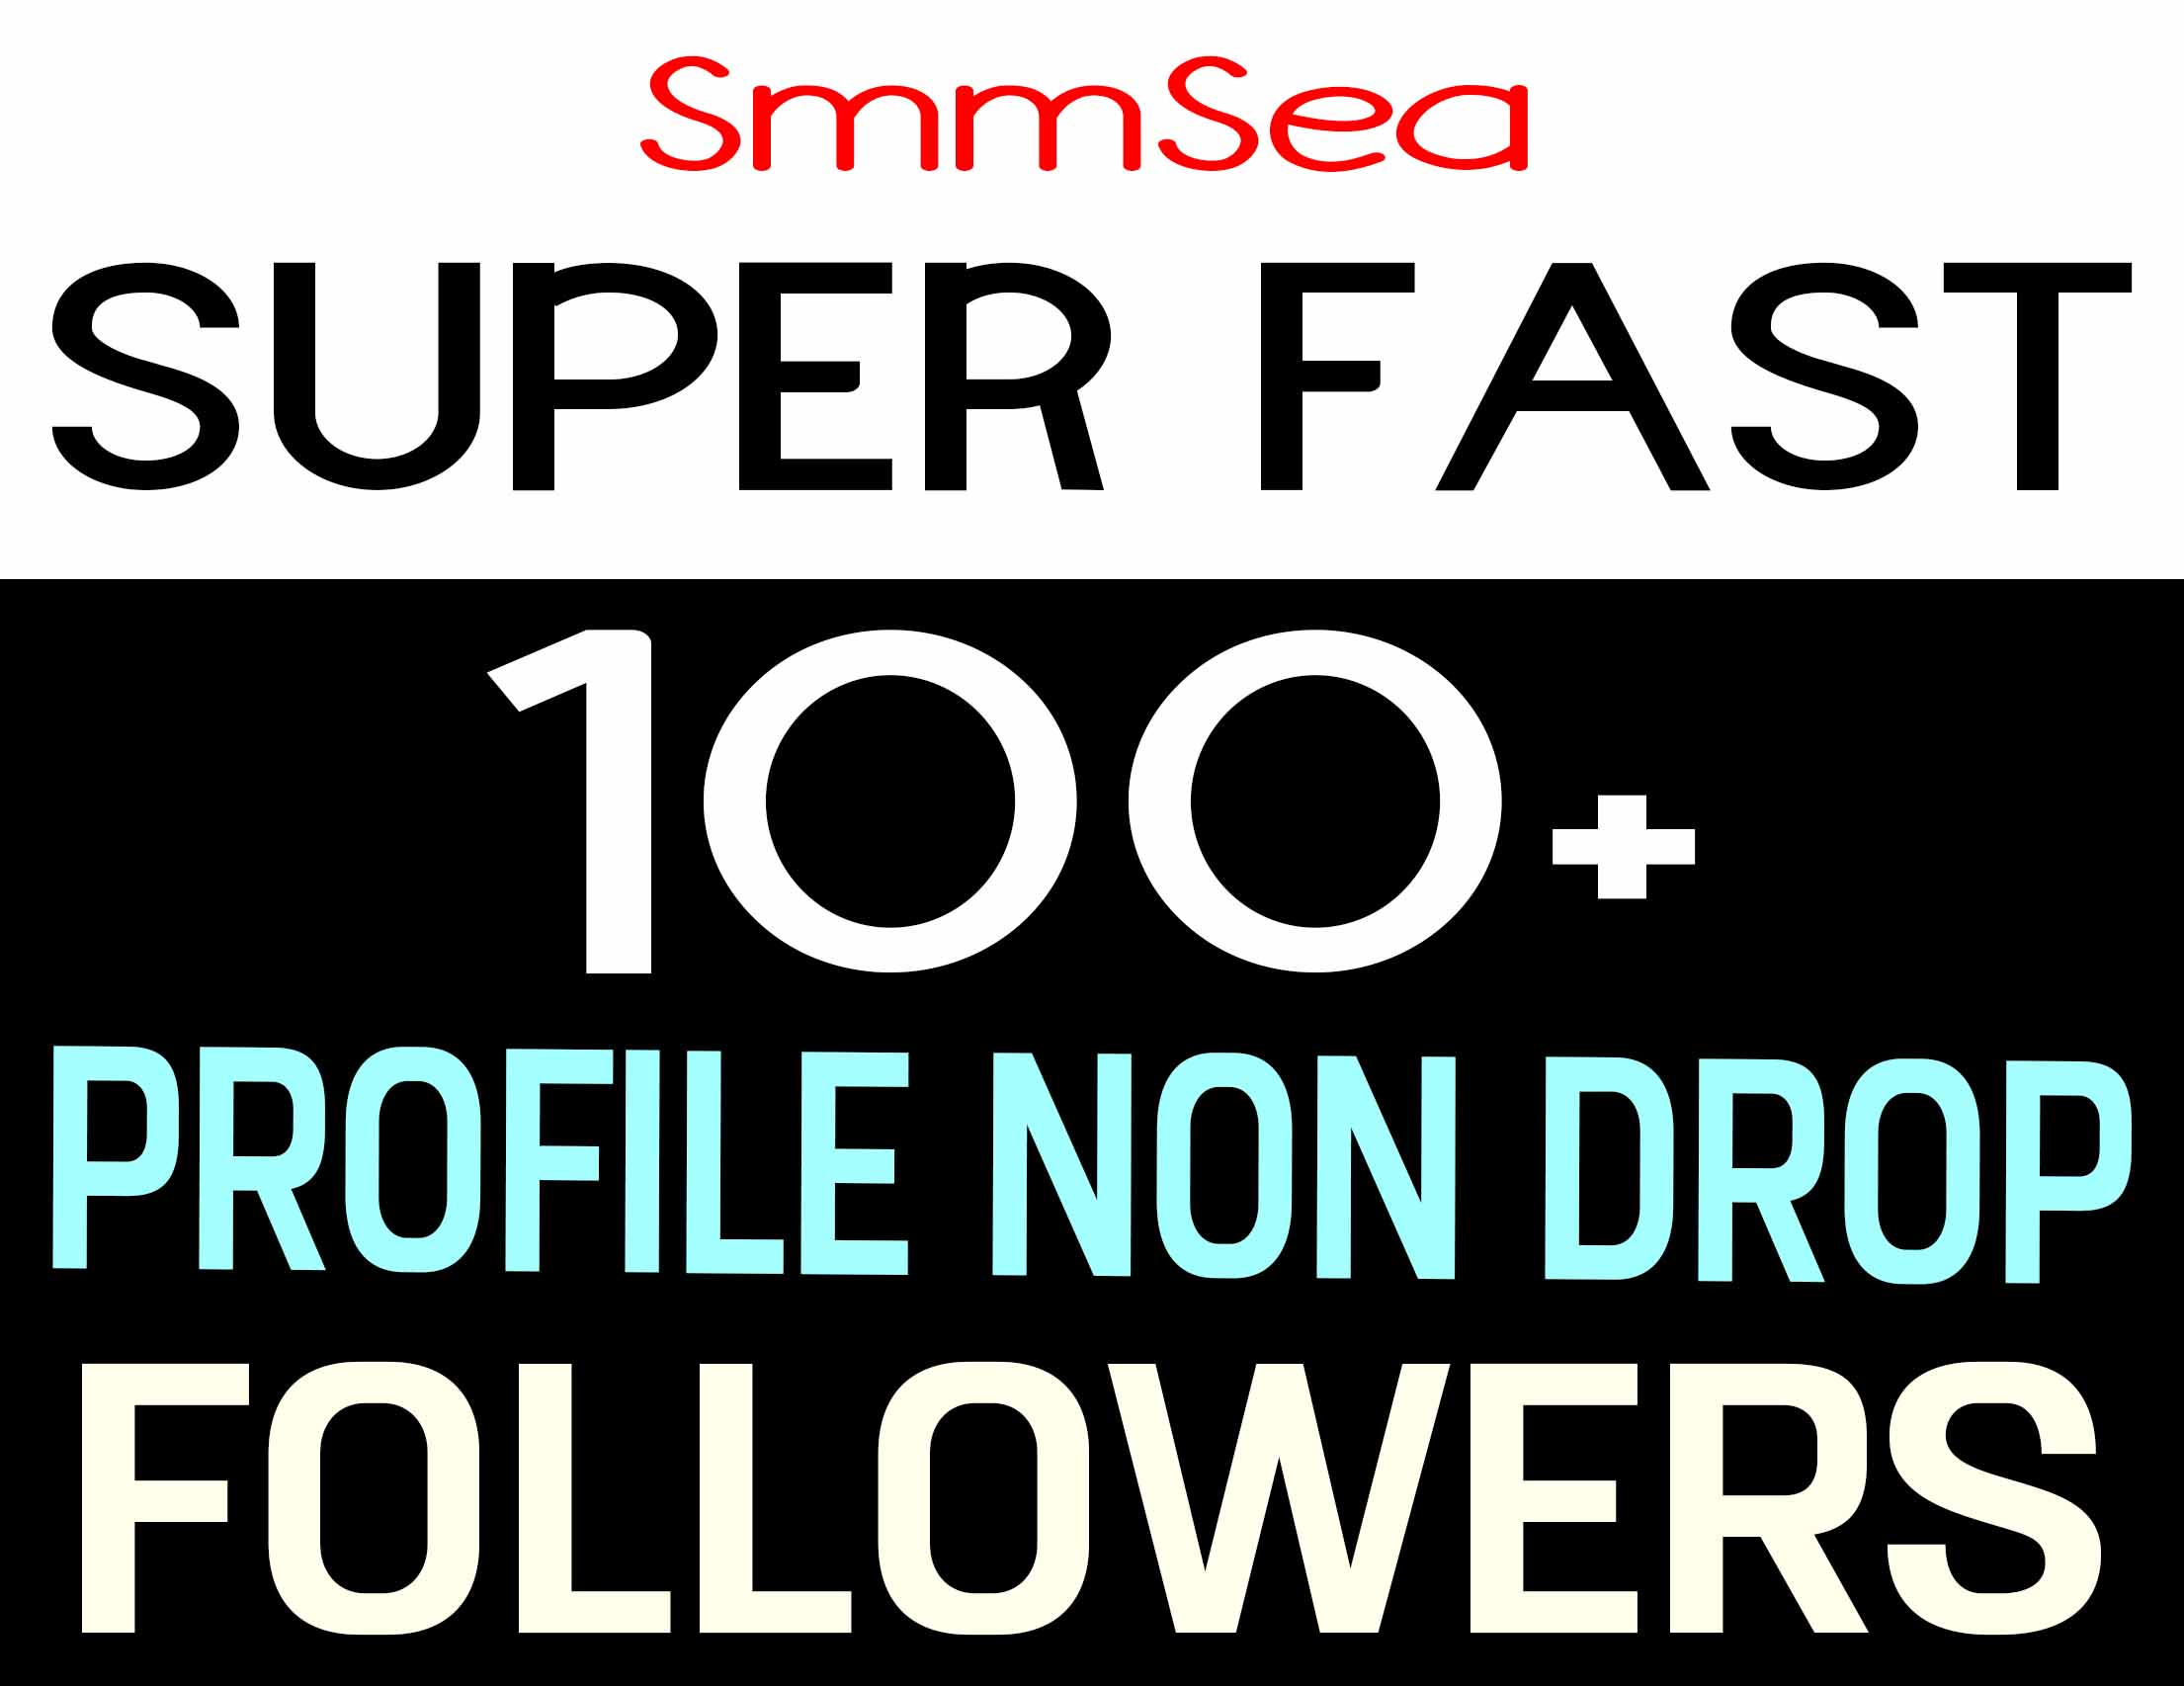 ADD 100+ PROFILE FOLLOWERS NON DROP AND HIGH QUALITY - INSTANTLY